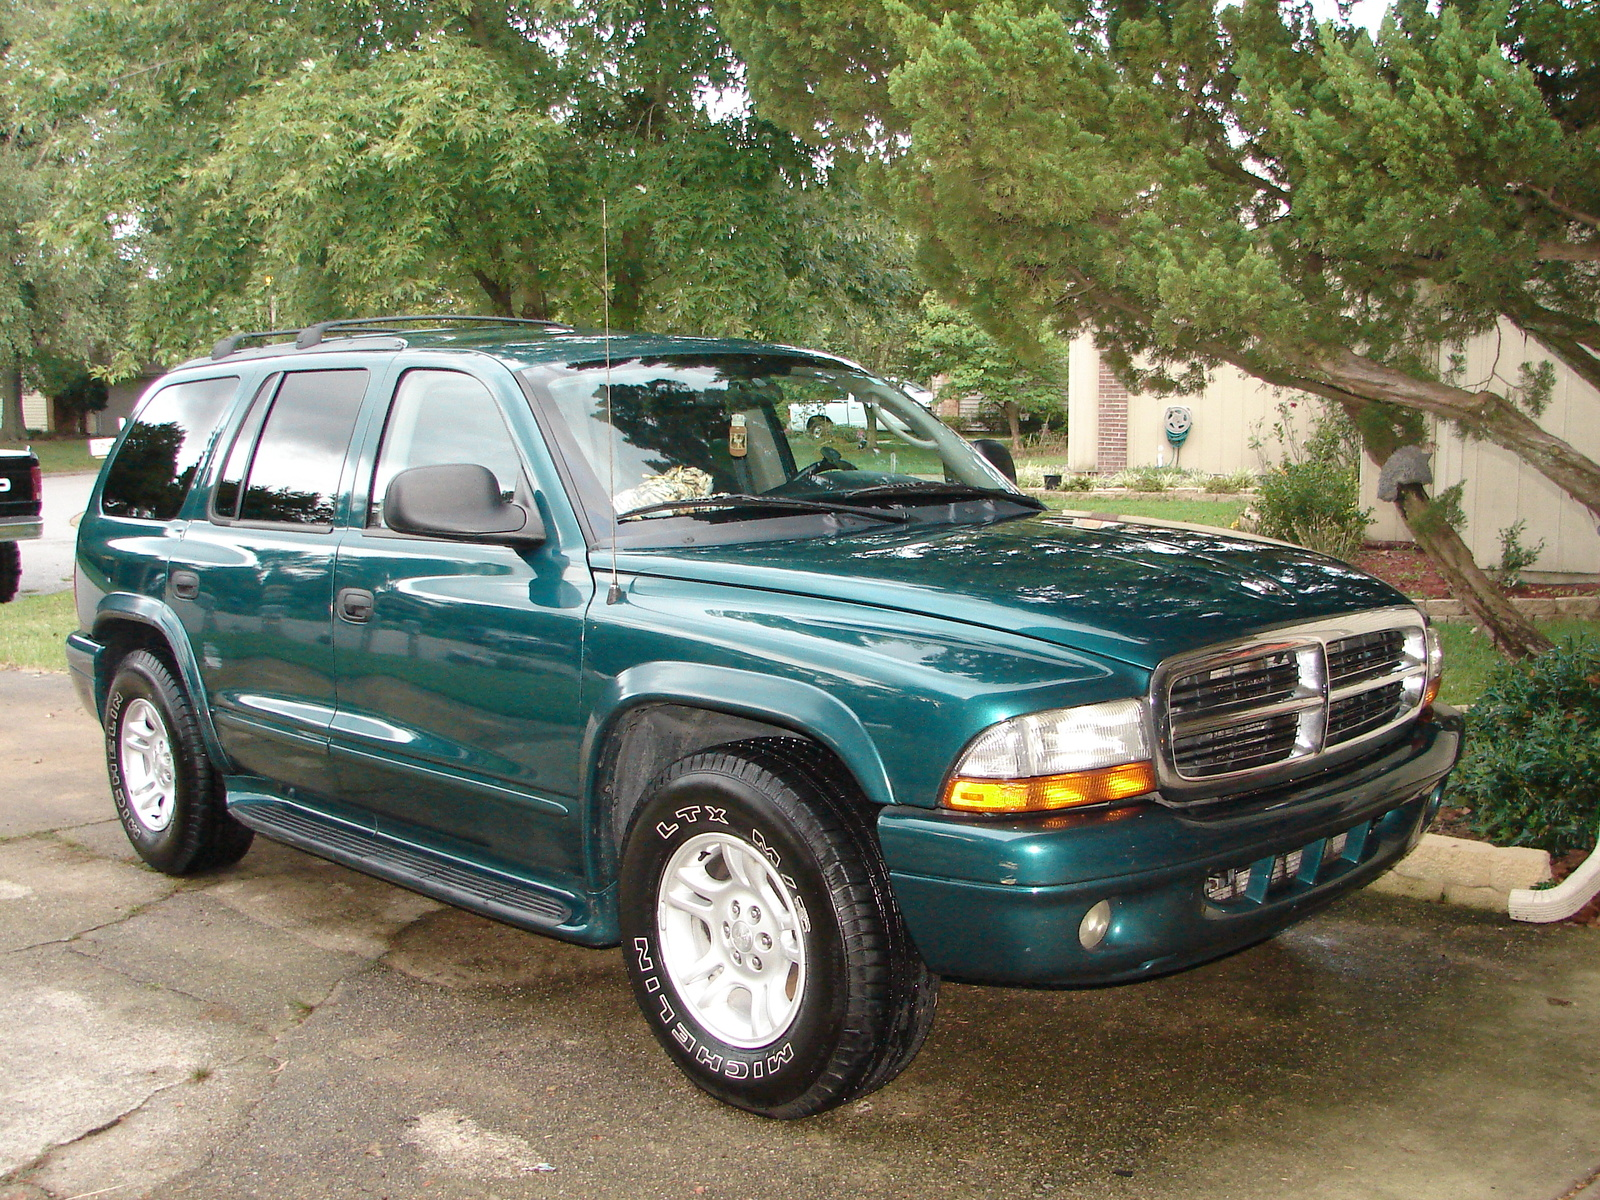 2003 Dodge Durango SLT picture